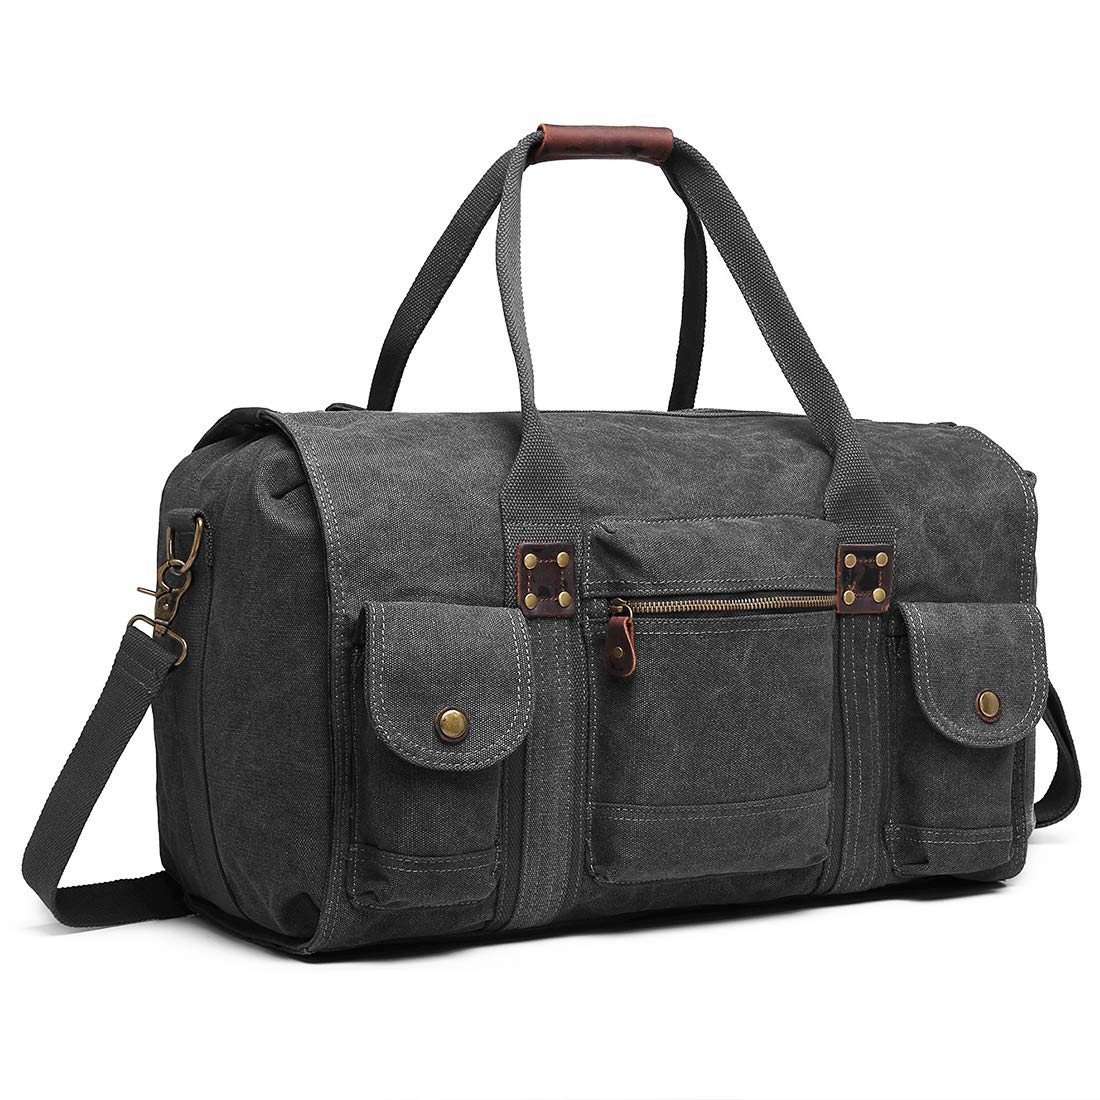 a4b6ec08f Canvas Duffle Bag Oversized Genuine Leather Weekend Bags for Men and Women  (Black2)